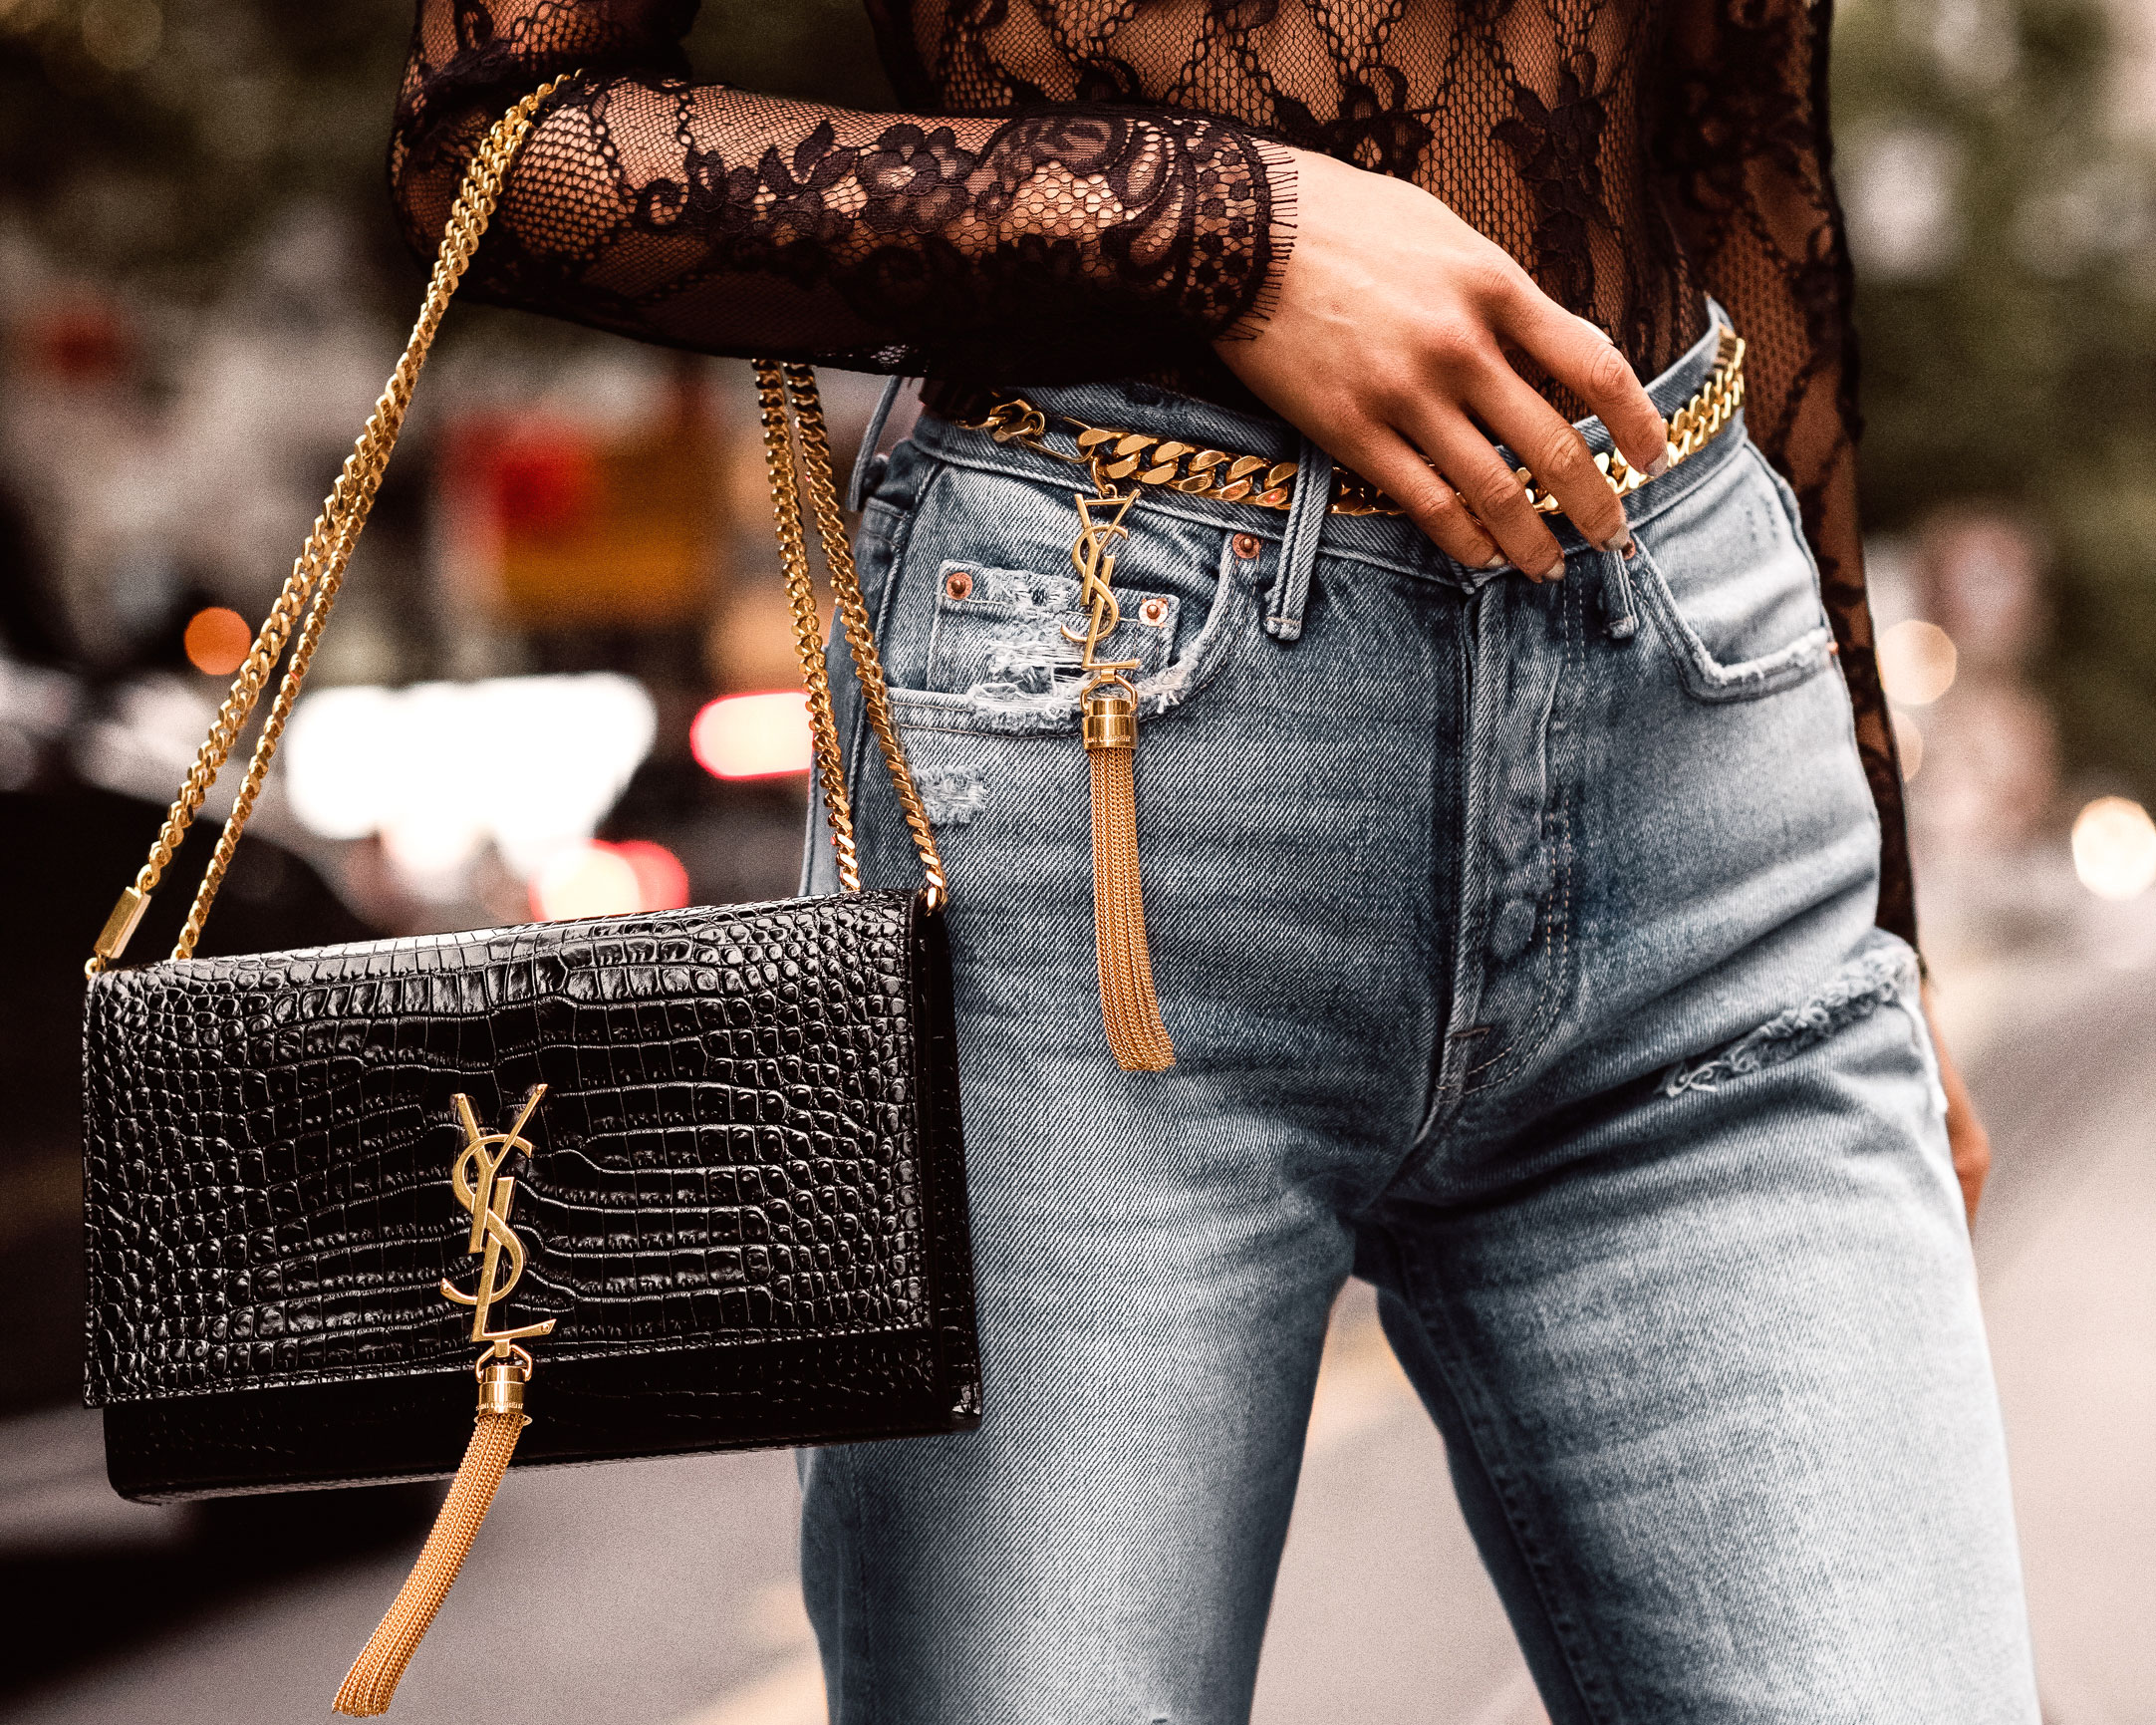 Micah-Gianneli-Australian-Melbourne-Fashion-Blogger-Influencer-Photography-Street-Style-Vogue-Editorial-Luisaviaroma-YSL-Saint-Laurent-Opyum-Kate-Bag-Revolve-NBD-Grlfrnd-Designer-Luxury-3